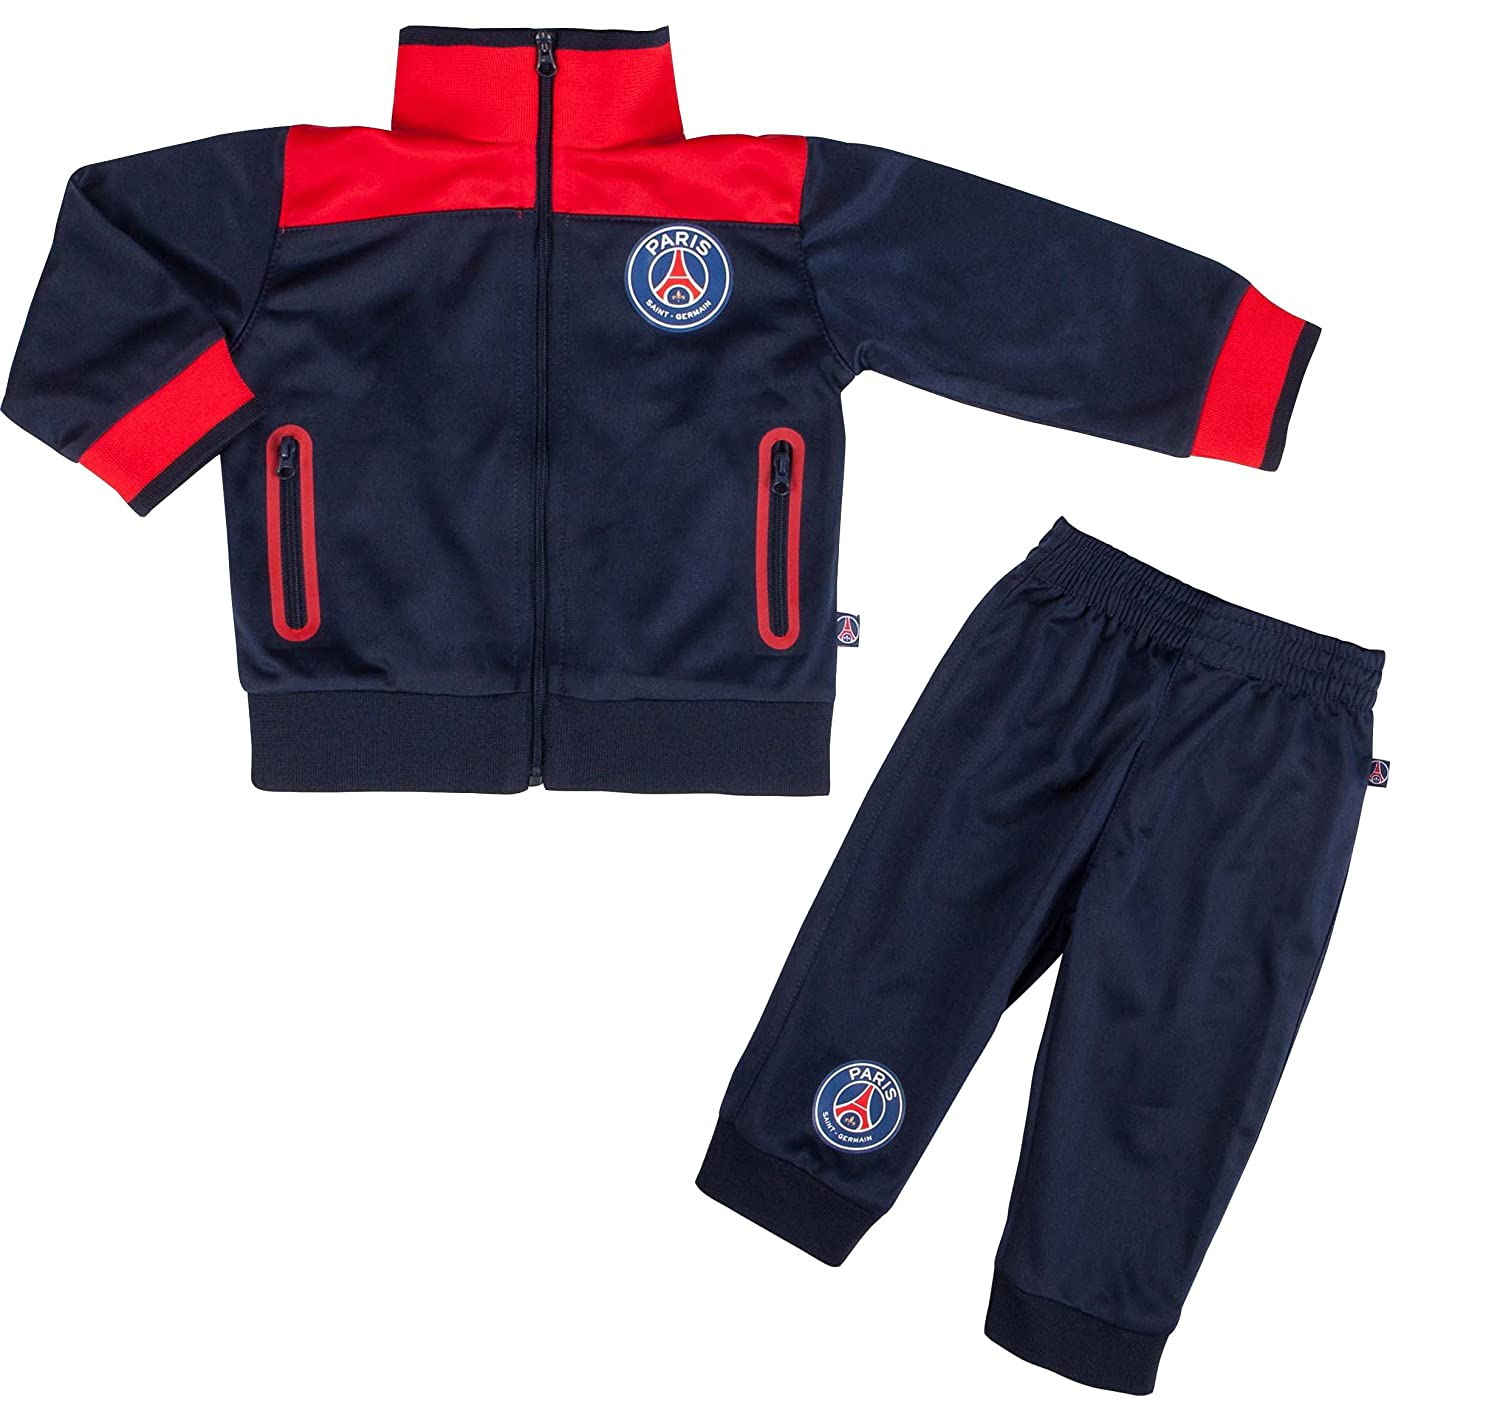 Survêtement PSG - Collection officielle Paris Saint Germain - Taille bébé  garçon Paris Saint-Germain 83b6a7b748e